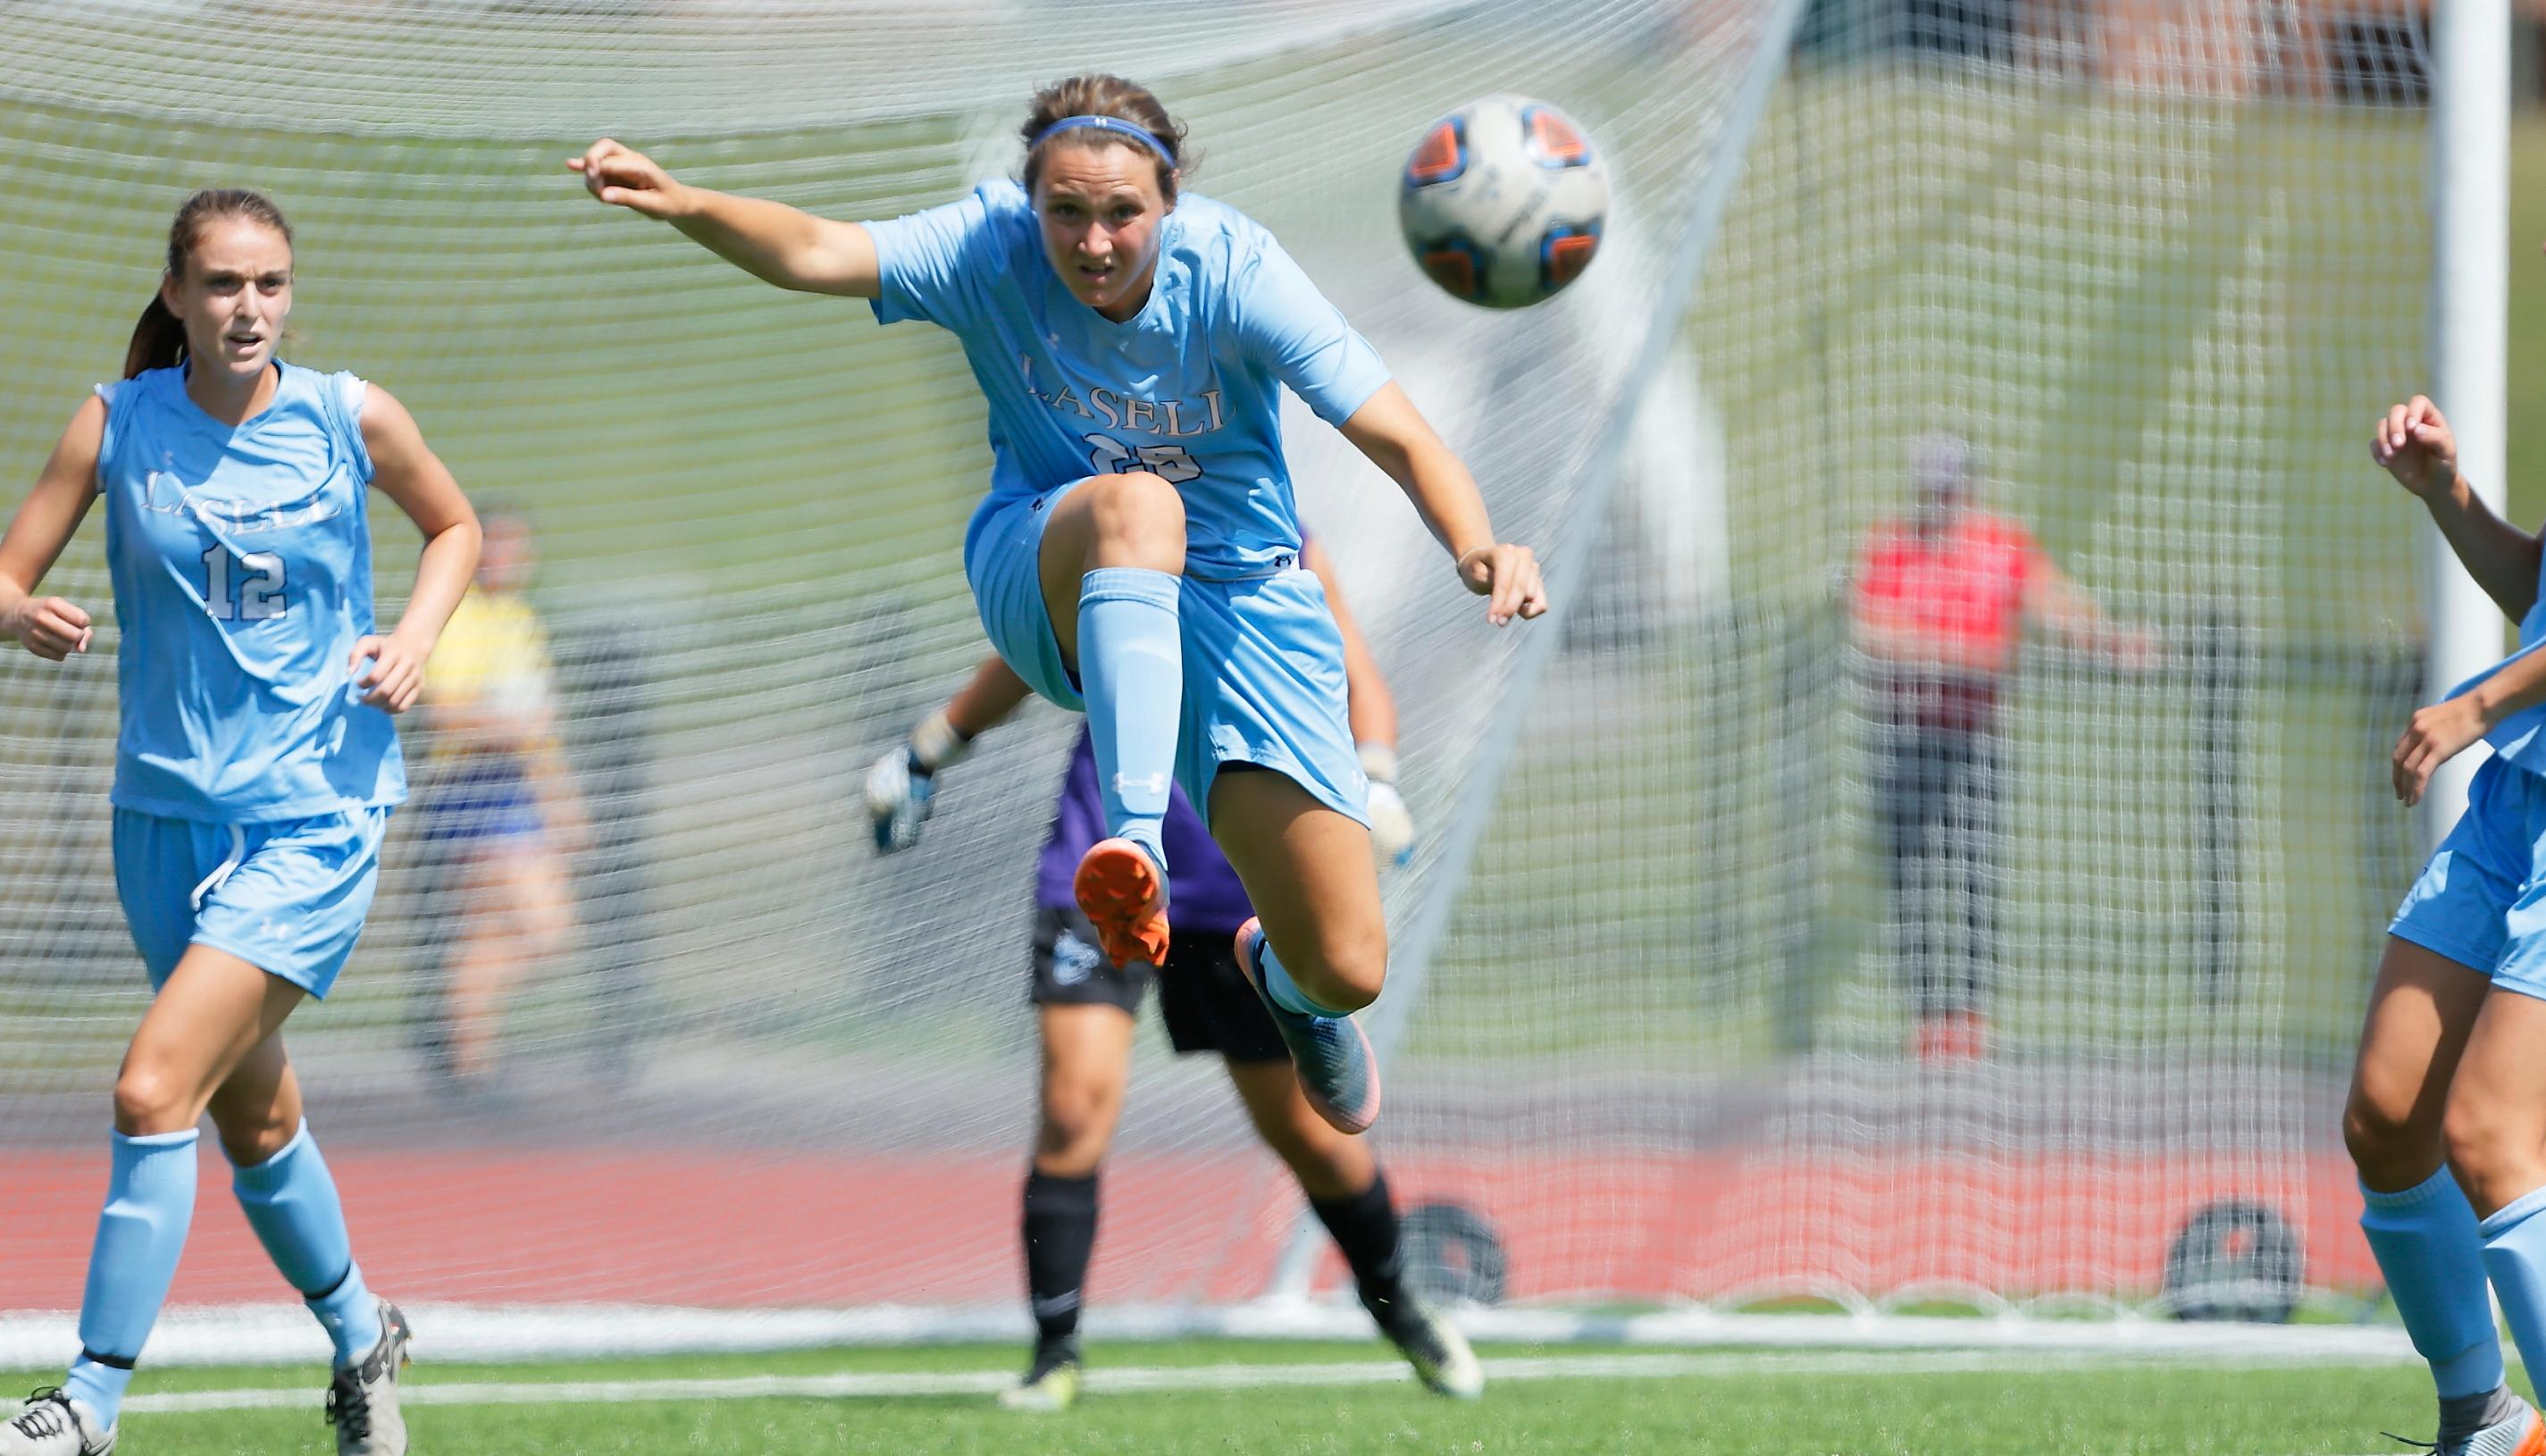 Lasell Women's Soccer blanked by Brandeis